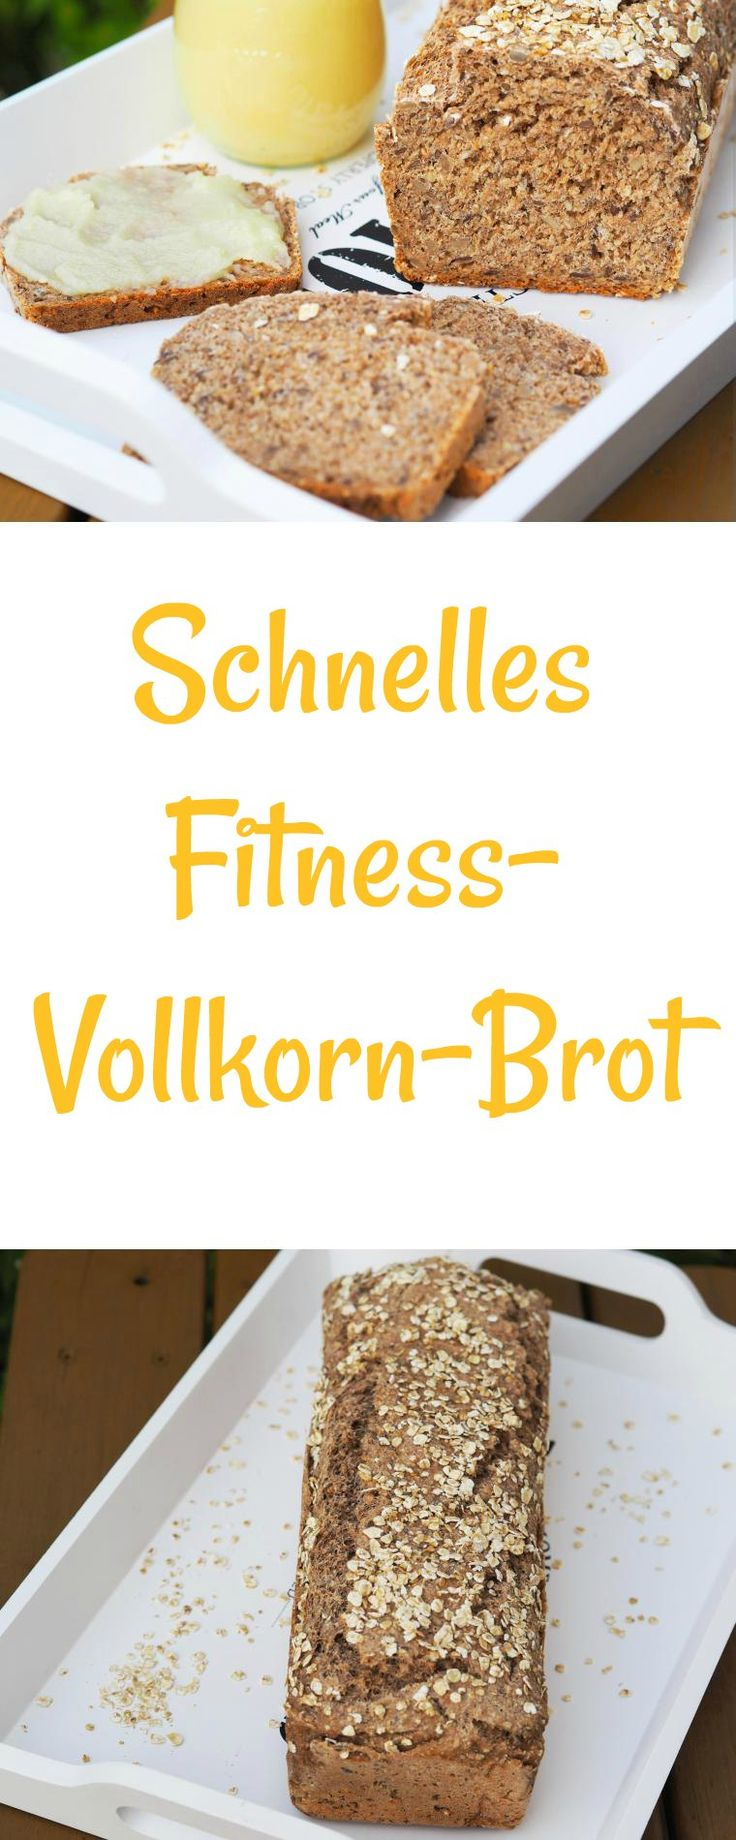 I like to bake a delicious, fast fitness wholegrain bread. High Vol ...